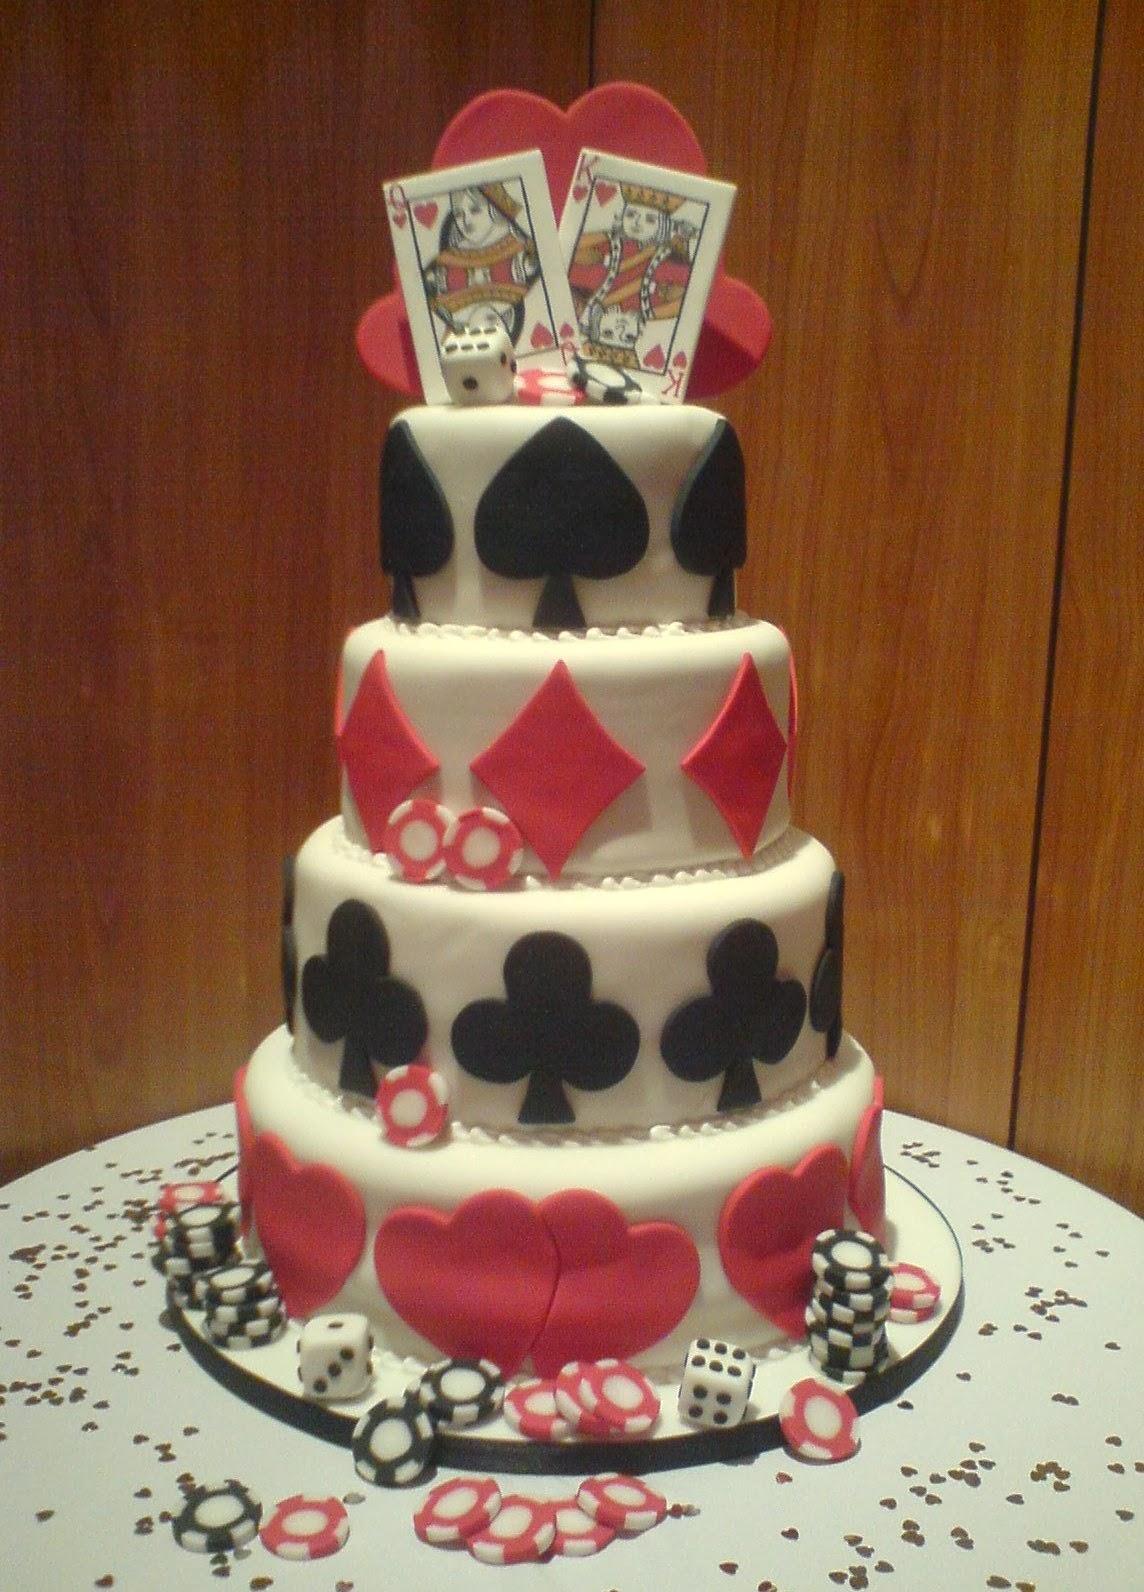 vegas themed wedding cake ideas and designs. Black Bedroom Furniture Sets. Home Design Ideas